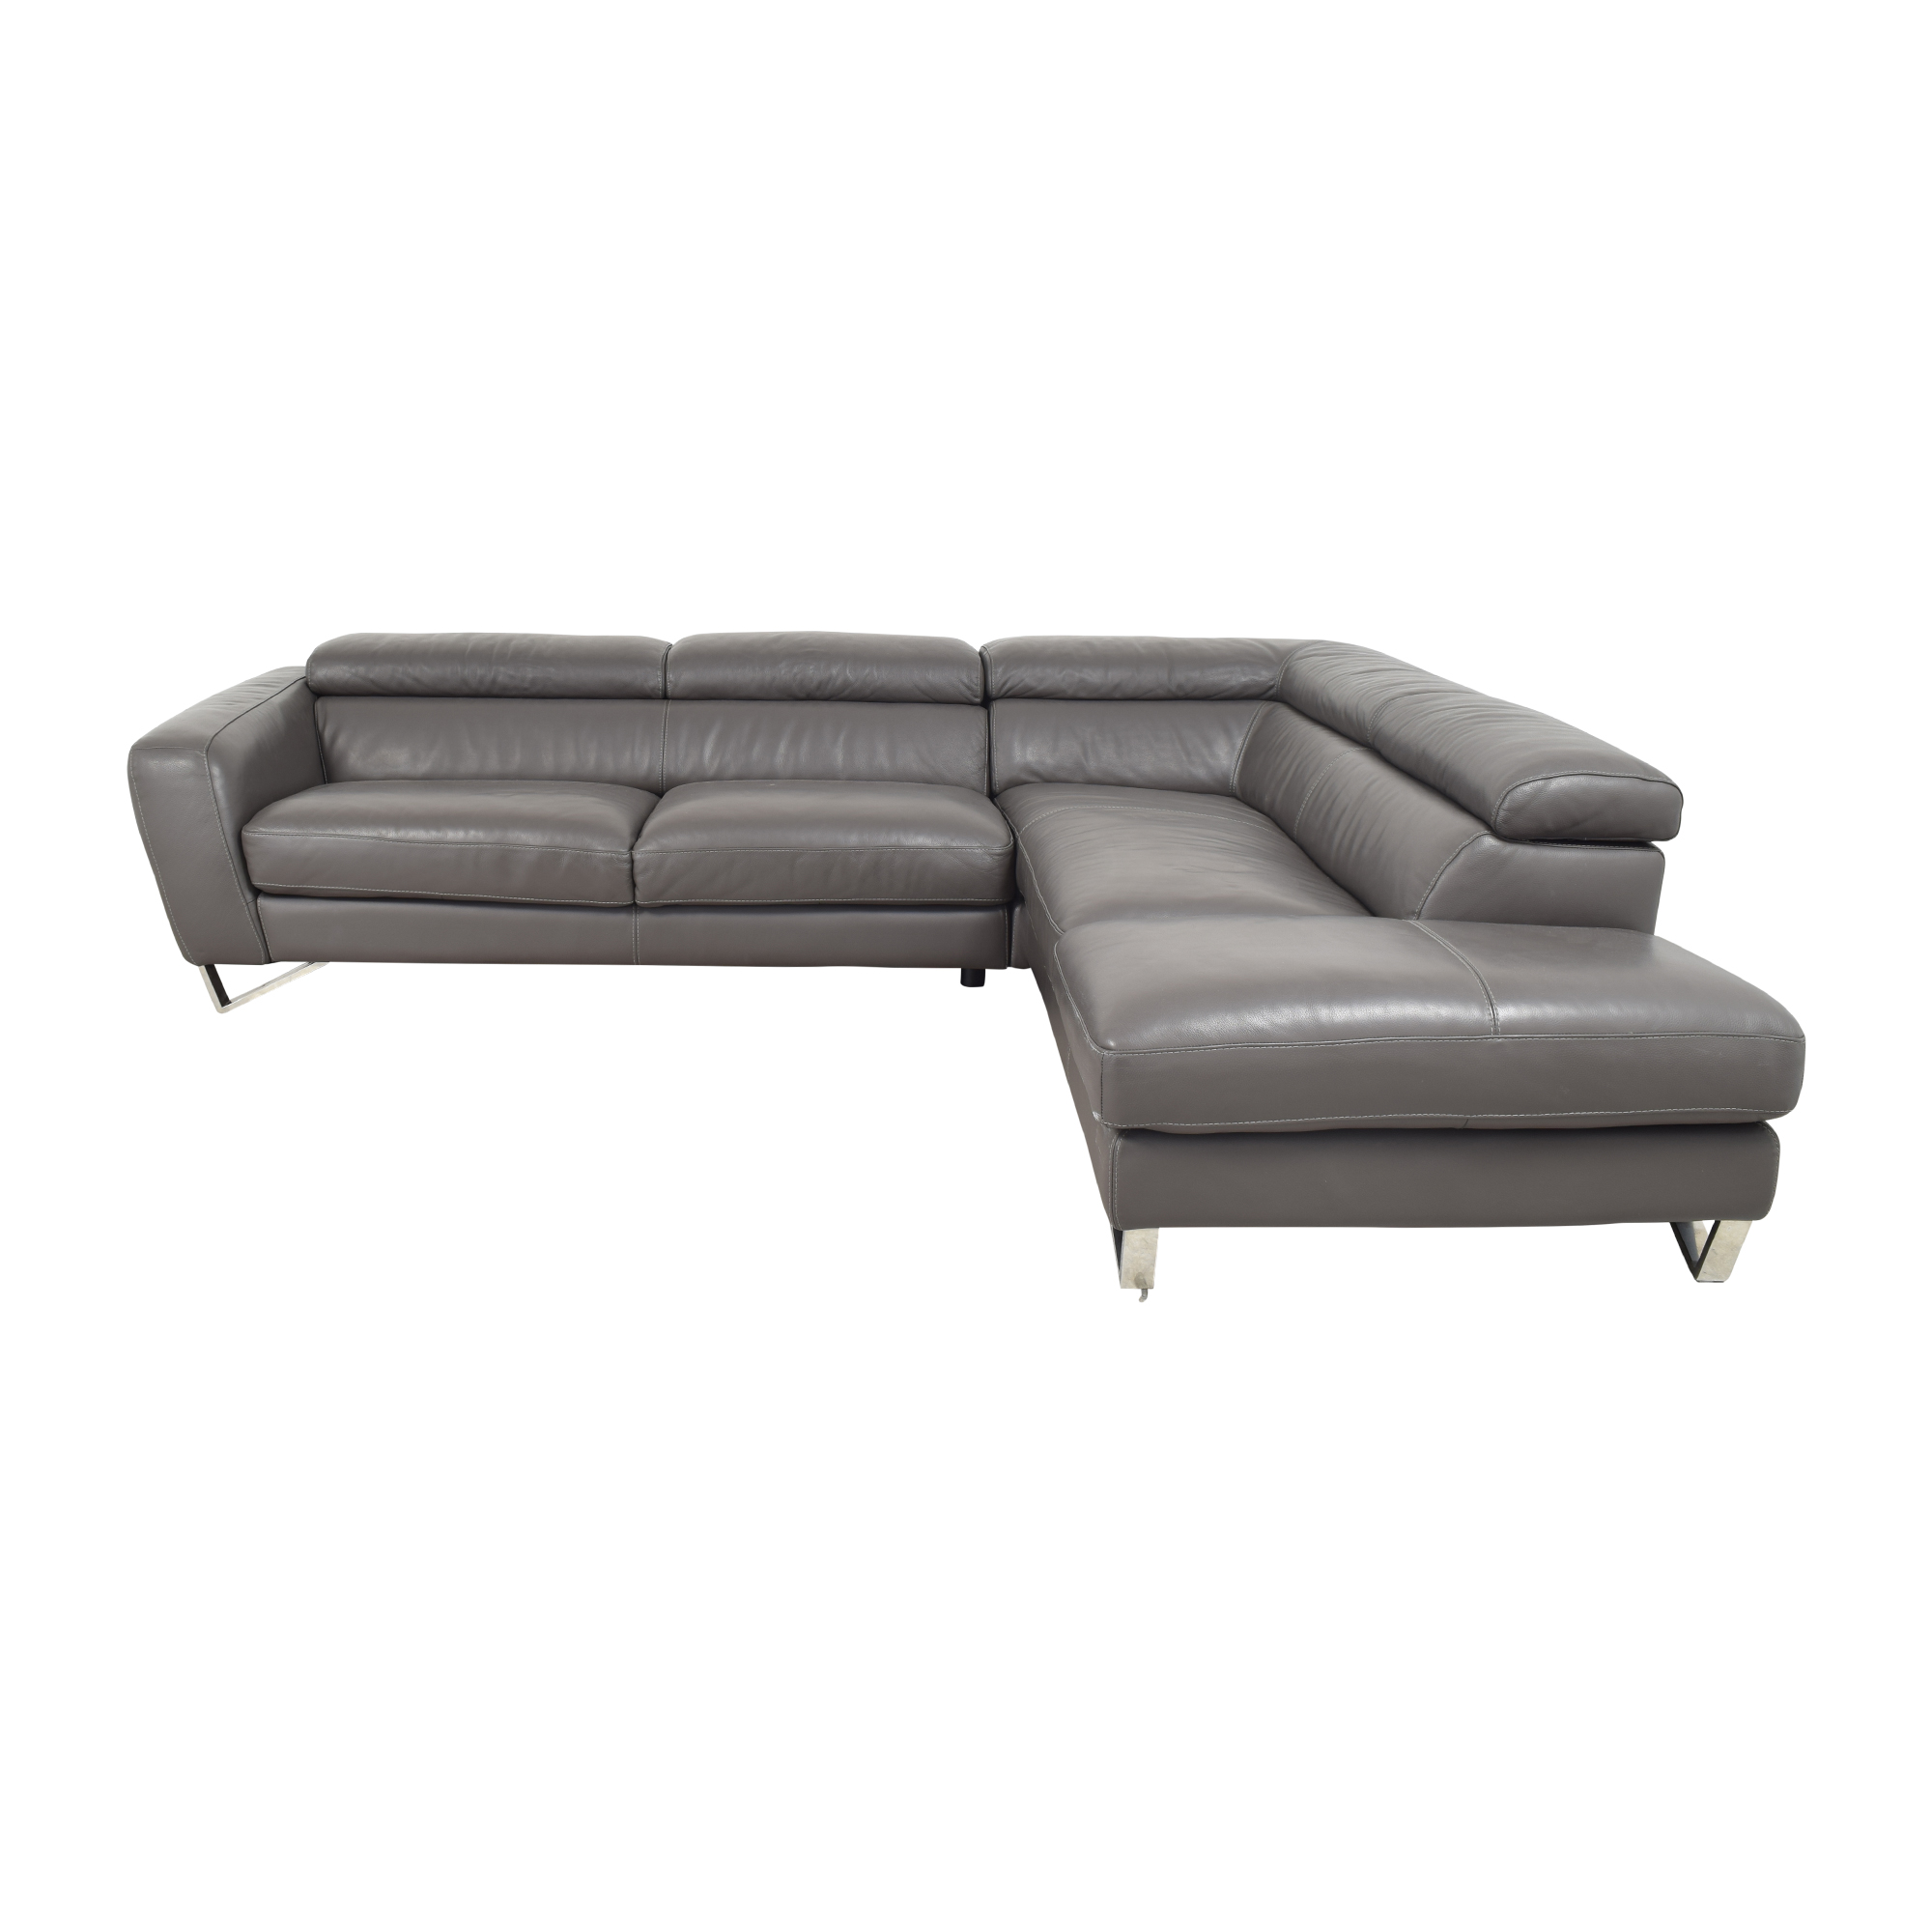 Bloomingdale's Bloomingdale's Nicoletti Chaise Sectional Sofa